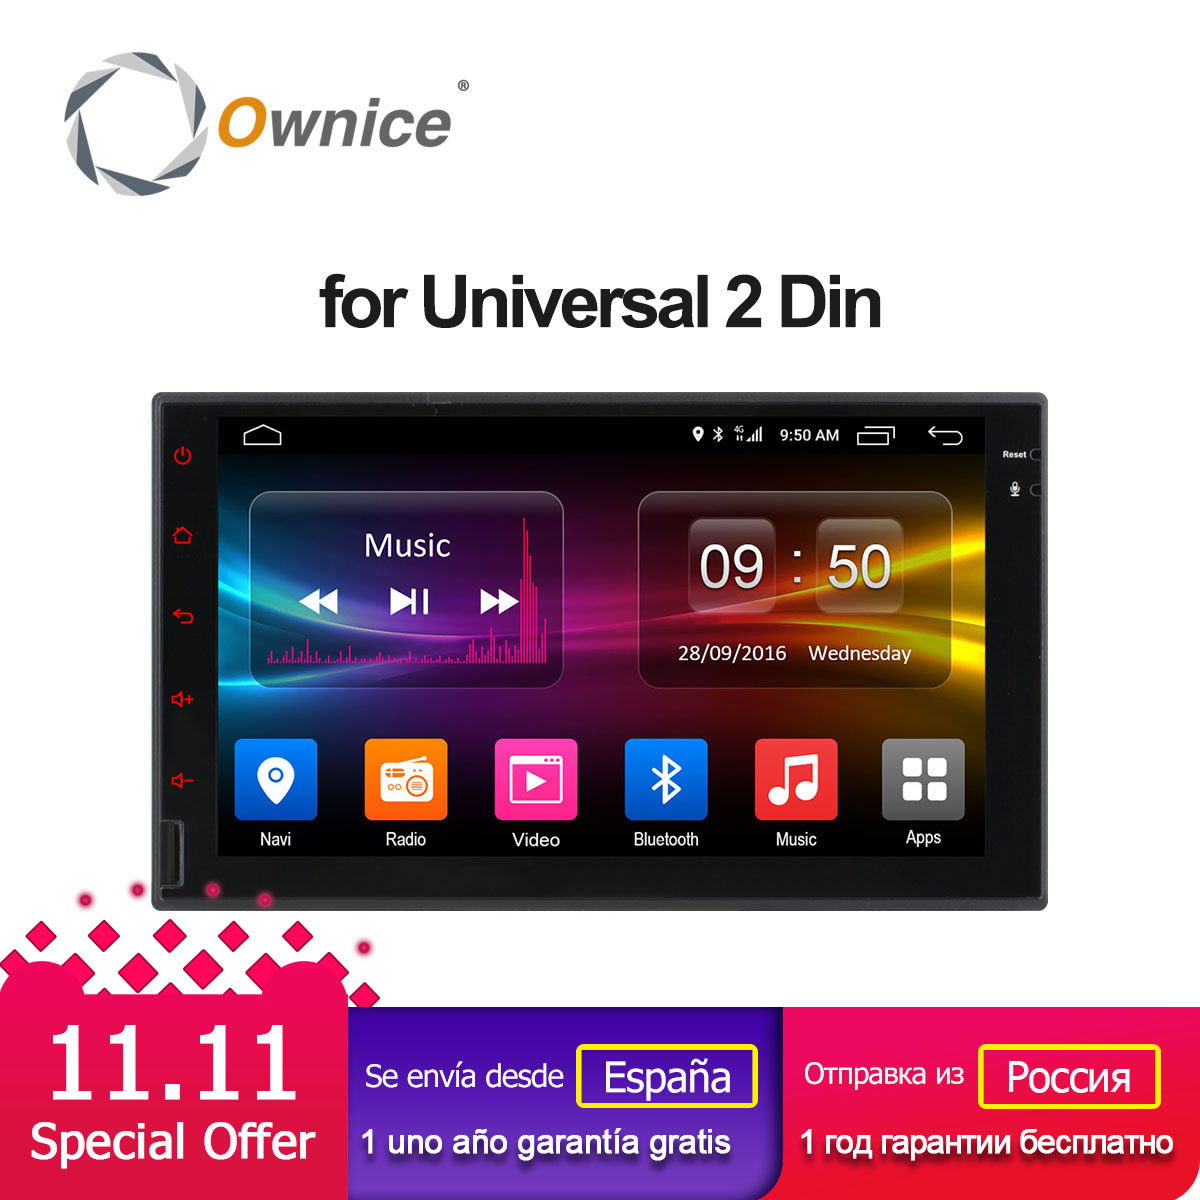 Ownice C500 Android 6.0 Octa 8 Core 2G RAM Support 4G DAB+ DVR 32G ROM Radio 2 din car radio player For Universal no dvd ownice c500 g10 octa core 2gb ram 32g rom android car dvd 8 1 gps for mazda 6 summit 2009 2015 wifi 4g lte radio dab dvr